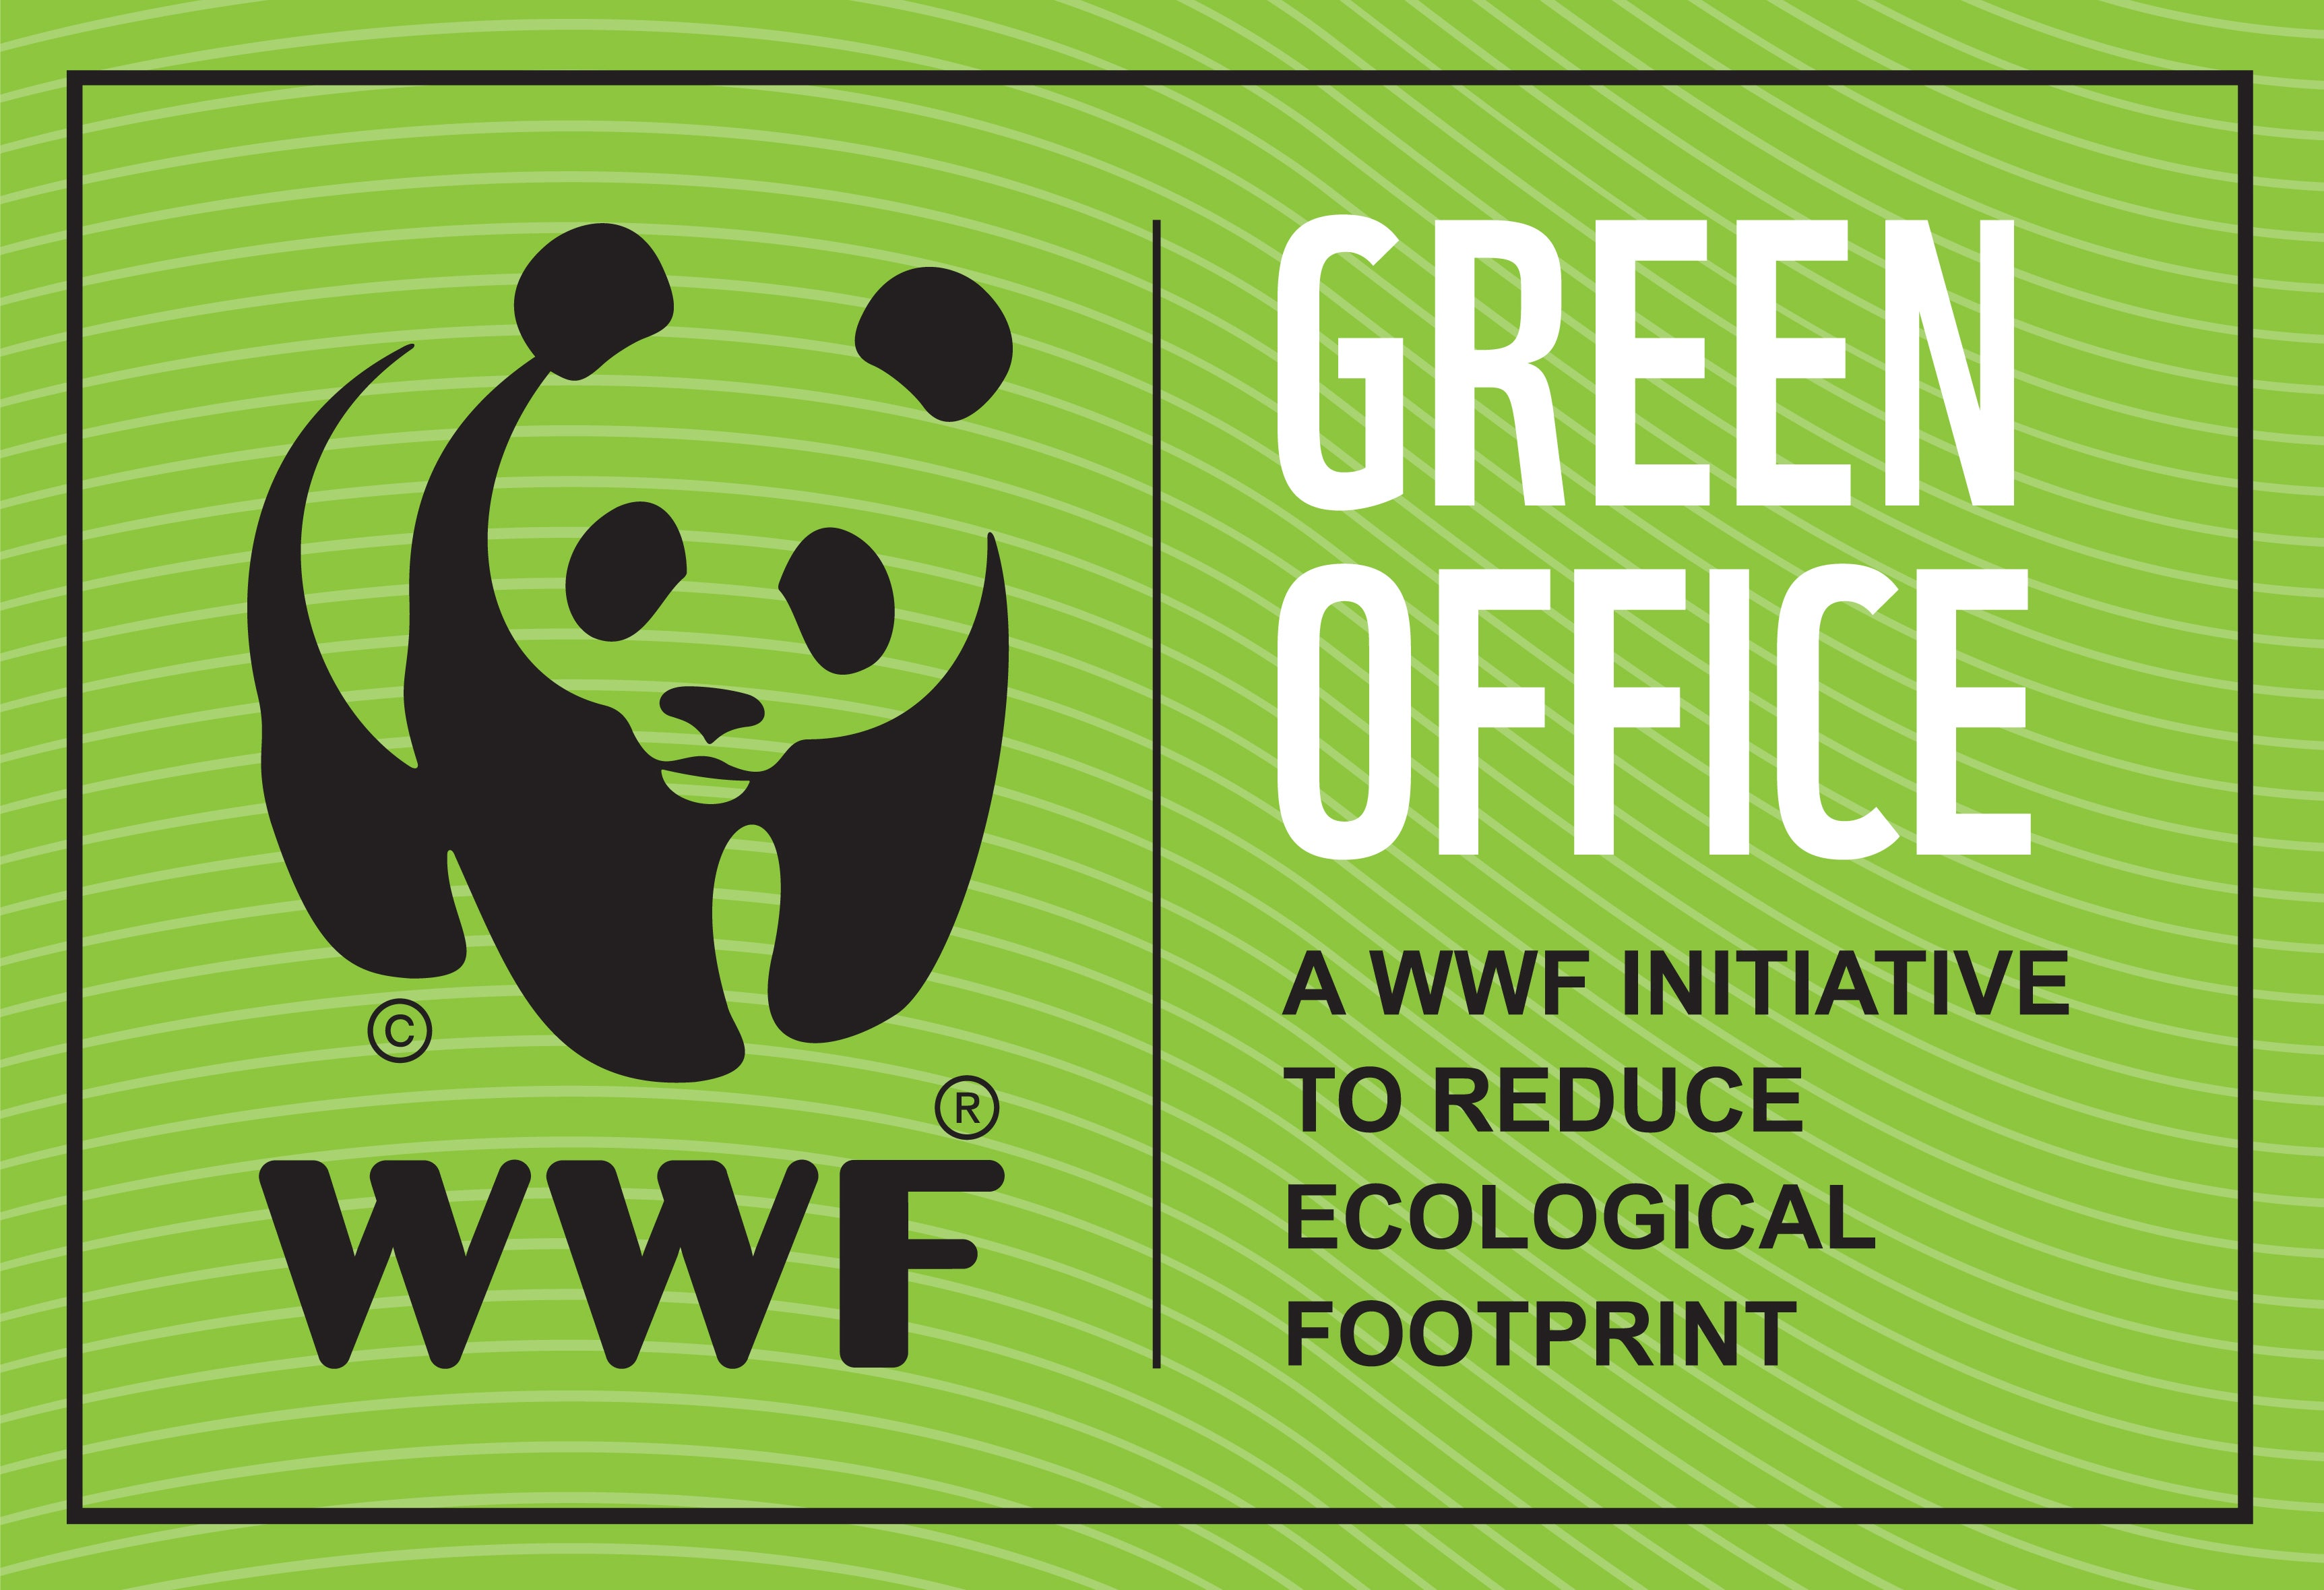 WWF Green Office logo